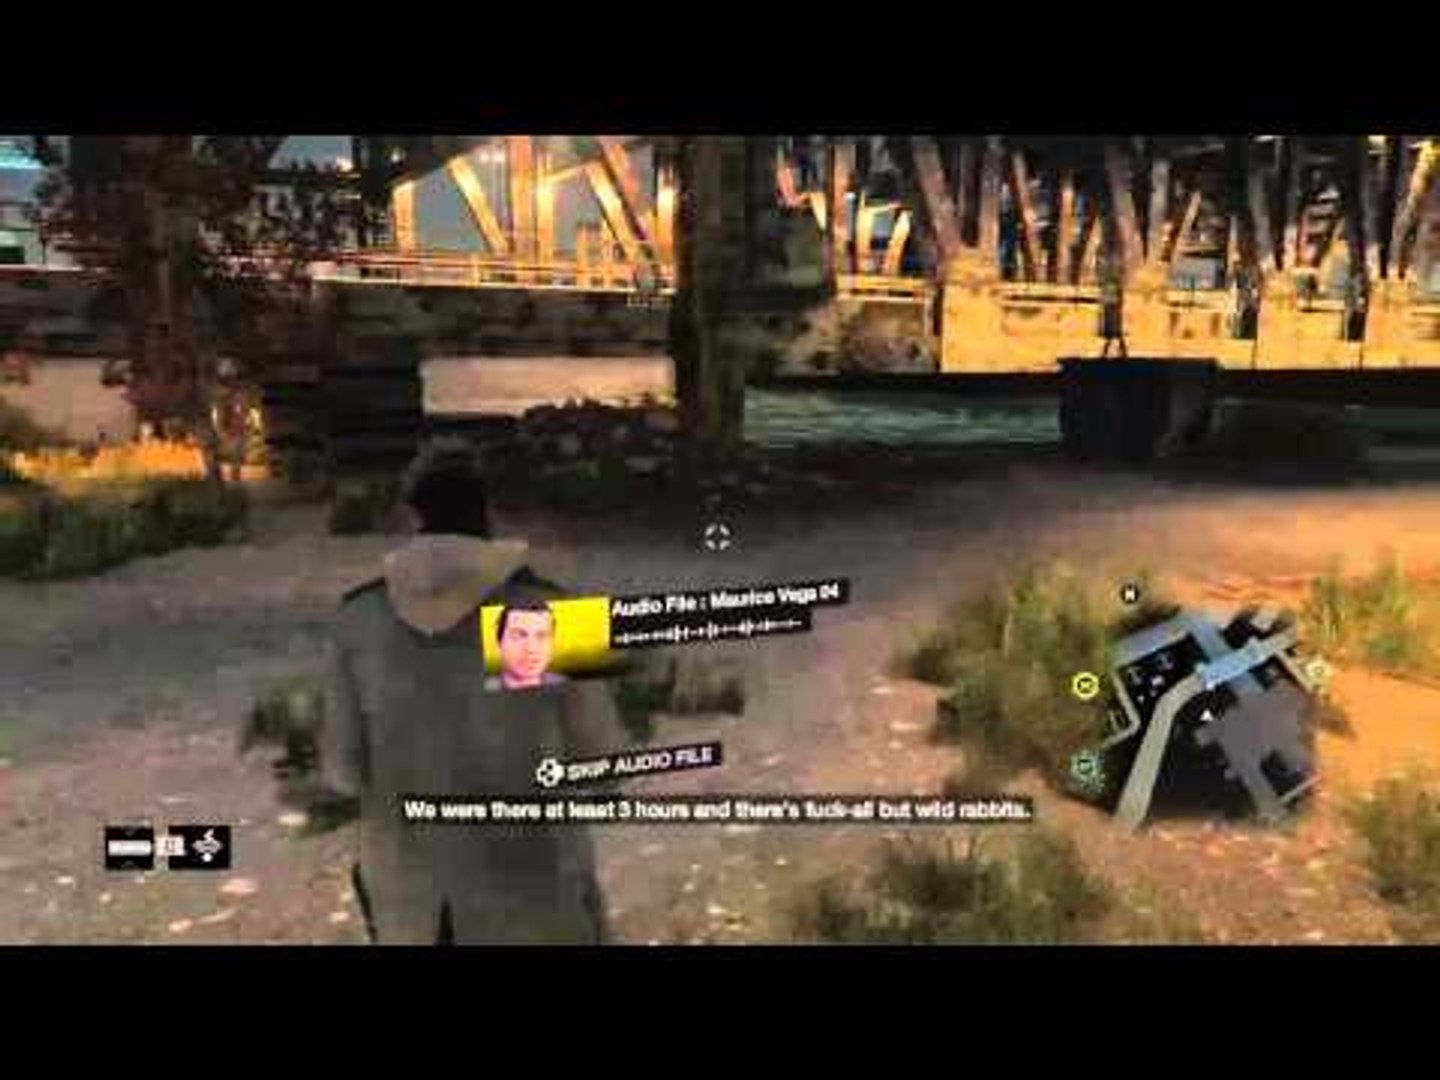 Watch Dogs   PS4   Burner Phone #4 Location  